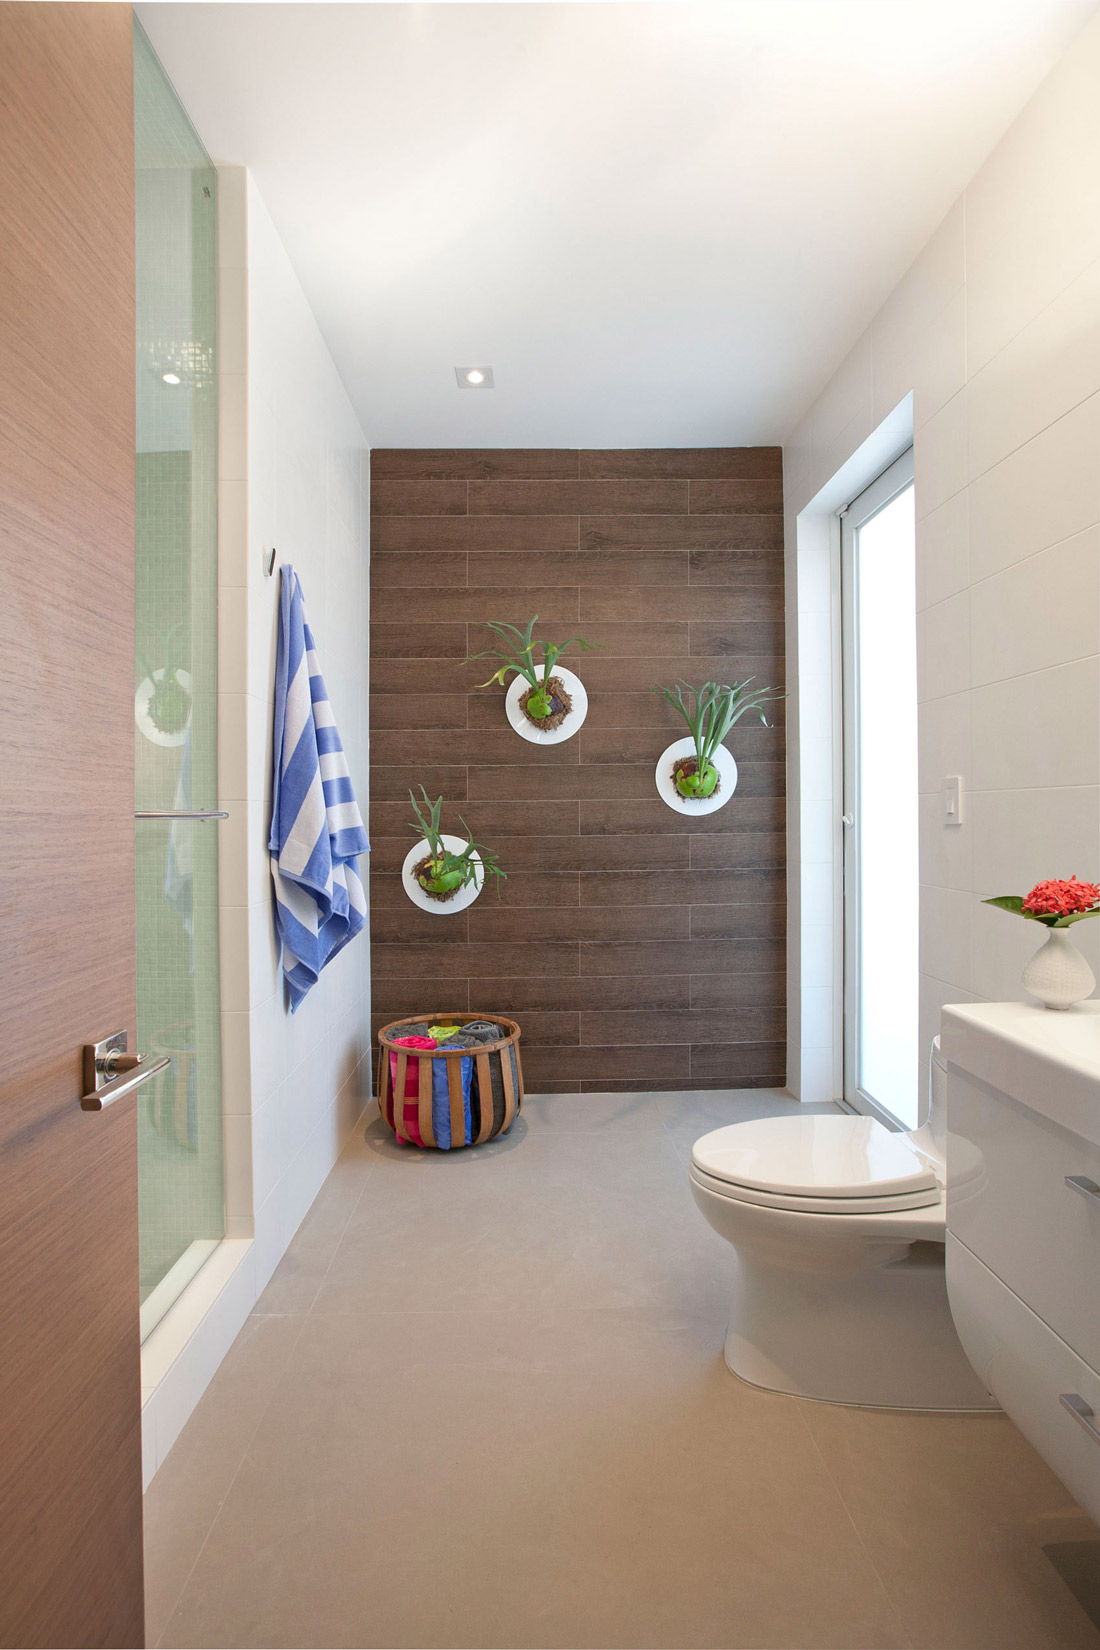 Bathroom, Stylish Interior Design in Miami, Florida